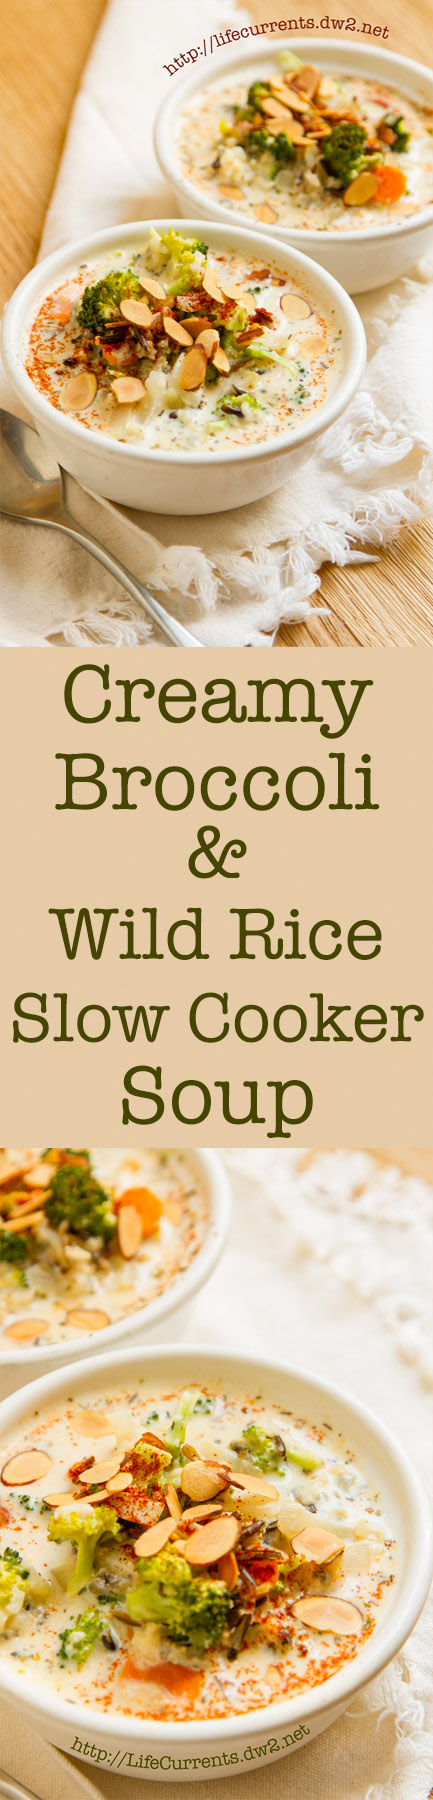 long pin for Pinterest with two images and the title: Creamy Broccoli and Wild Rice Slow Cooker Soup